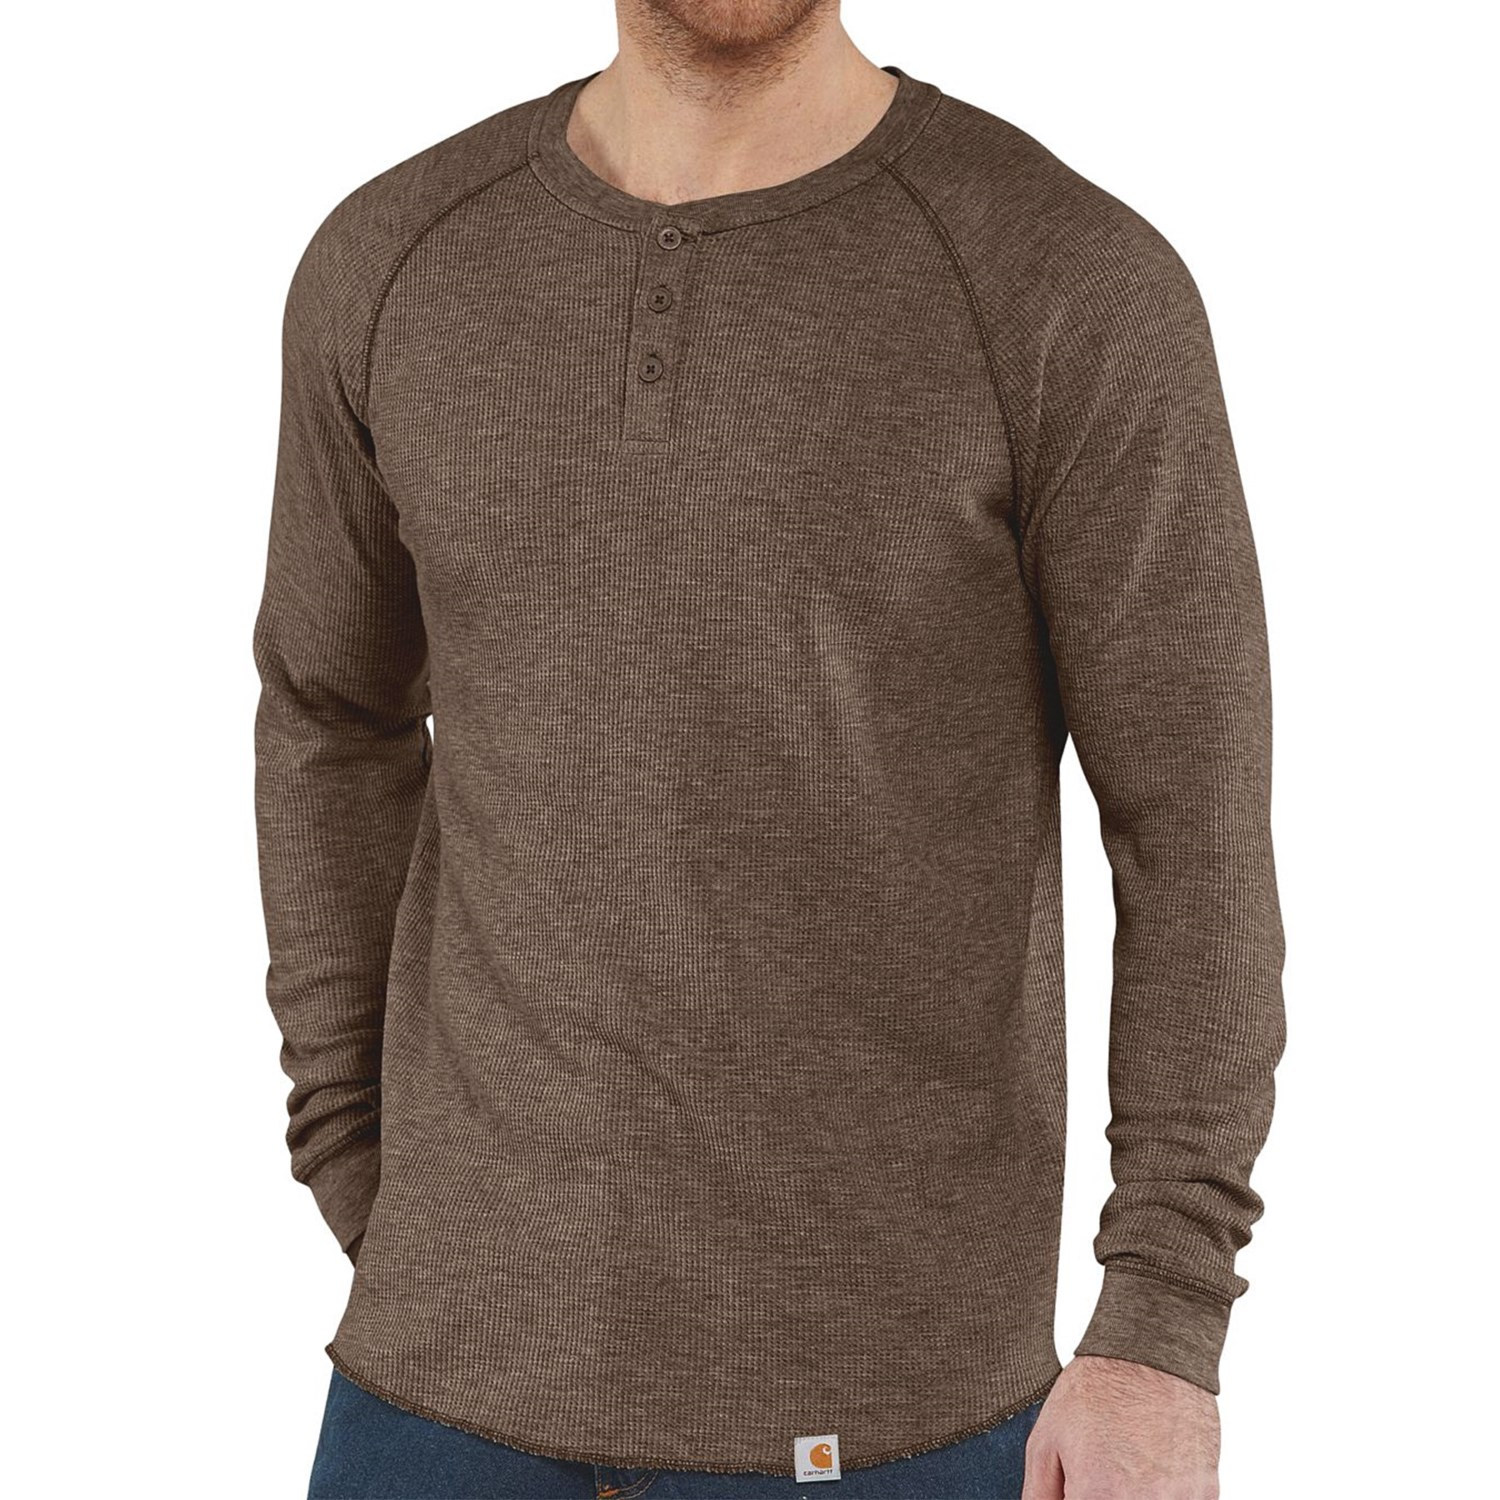 Carhartt thermal knit henley shirt lightweight long for Men s thermal henley long sleeve shirts